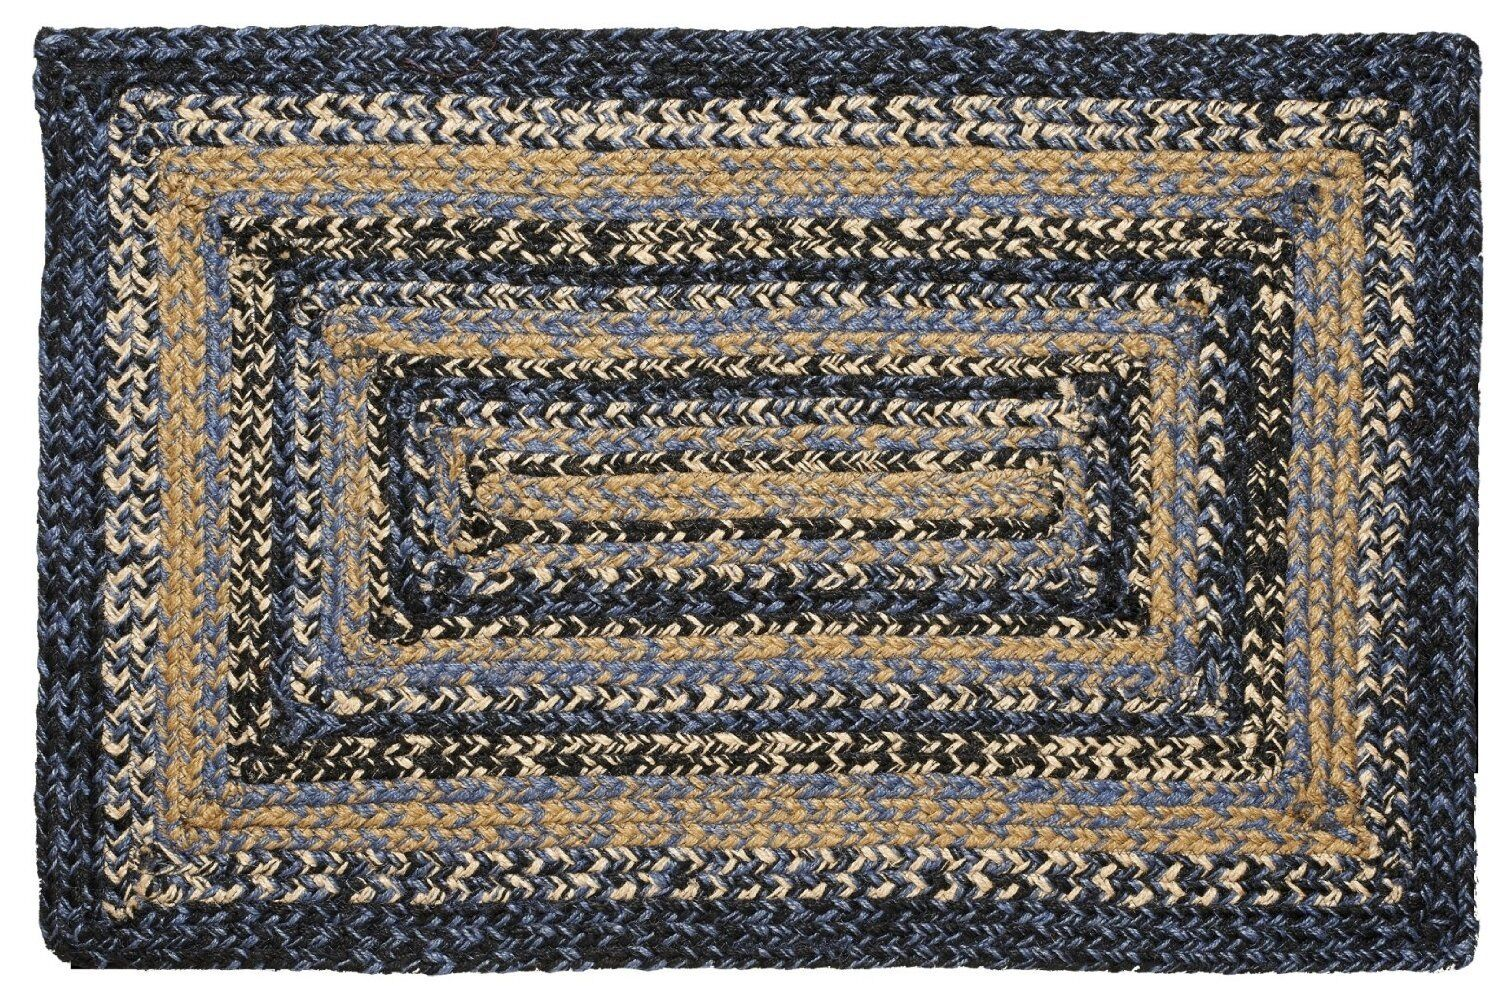 IHF HOME DECOR 20 X 30 BRAIDED NATURAL AREA FLOOR JUTE